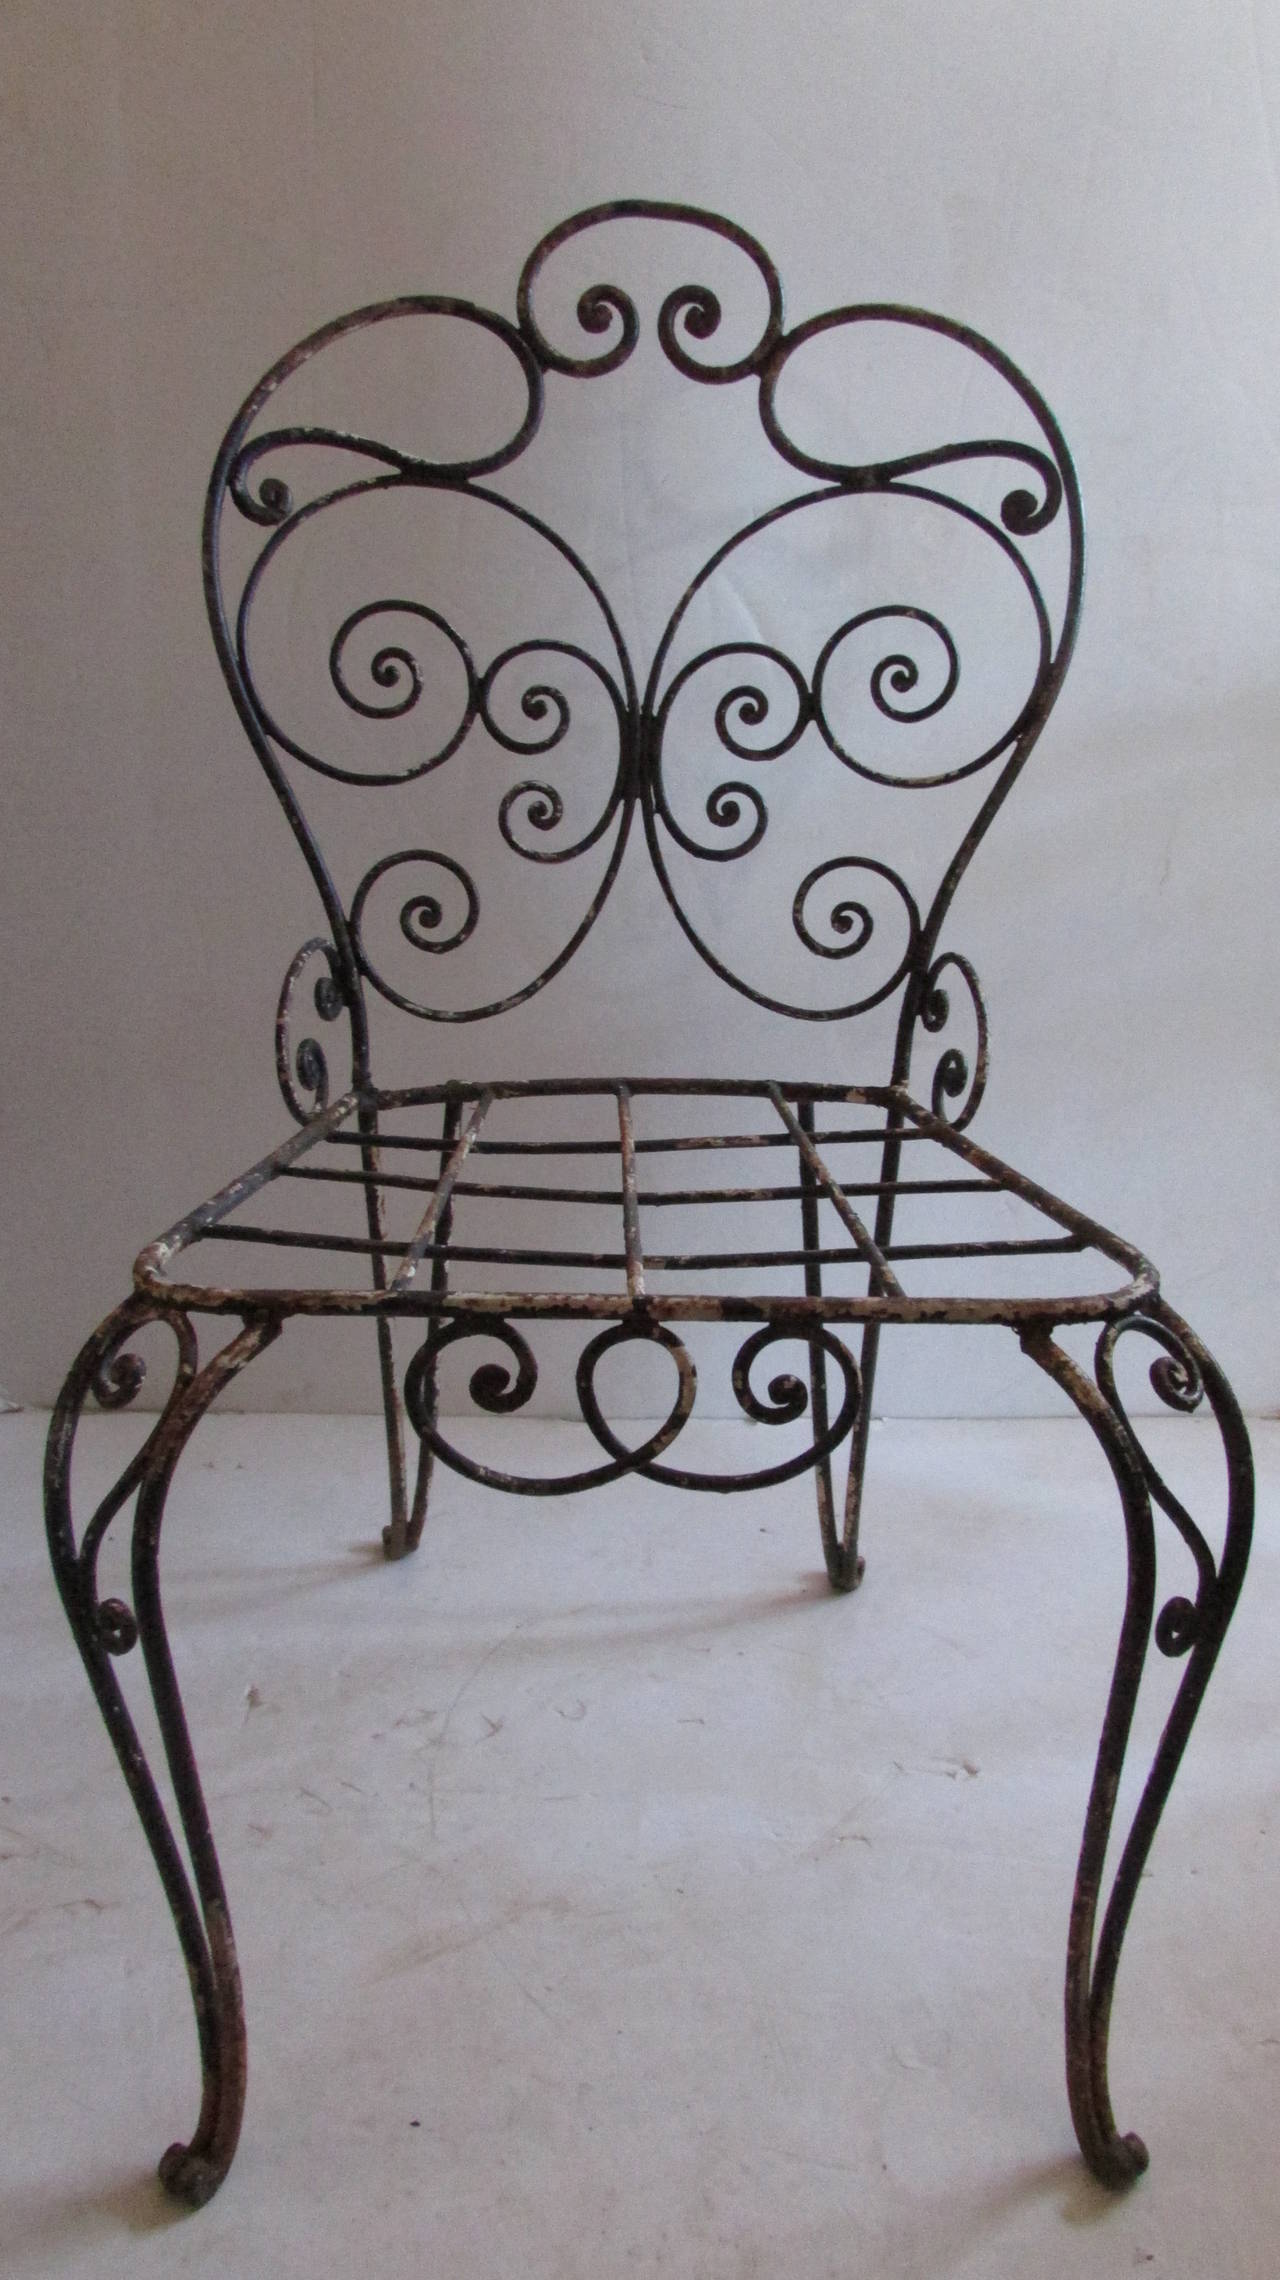 A very pretty antique iron garden chair with airy scrolled design and nicely aged worn black painted surface from years of outside use. Most likely French in origin - dating from the 1940's